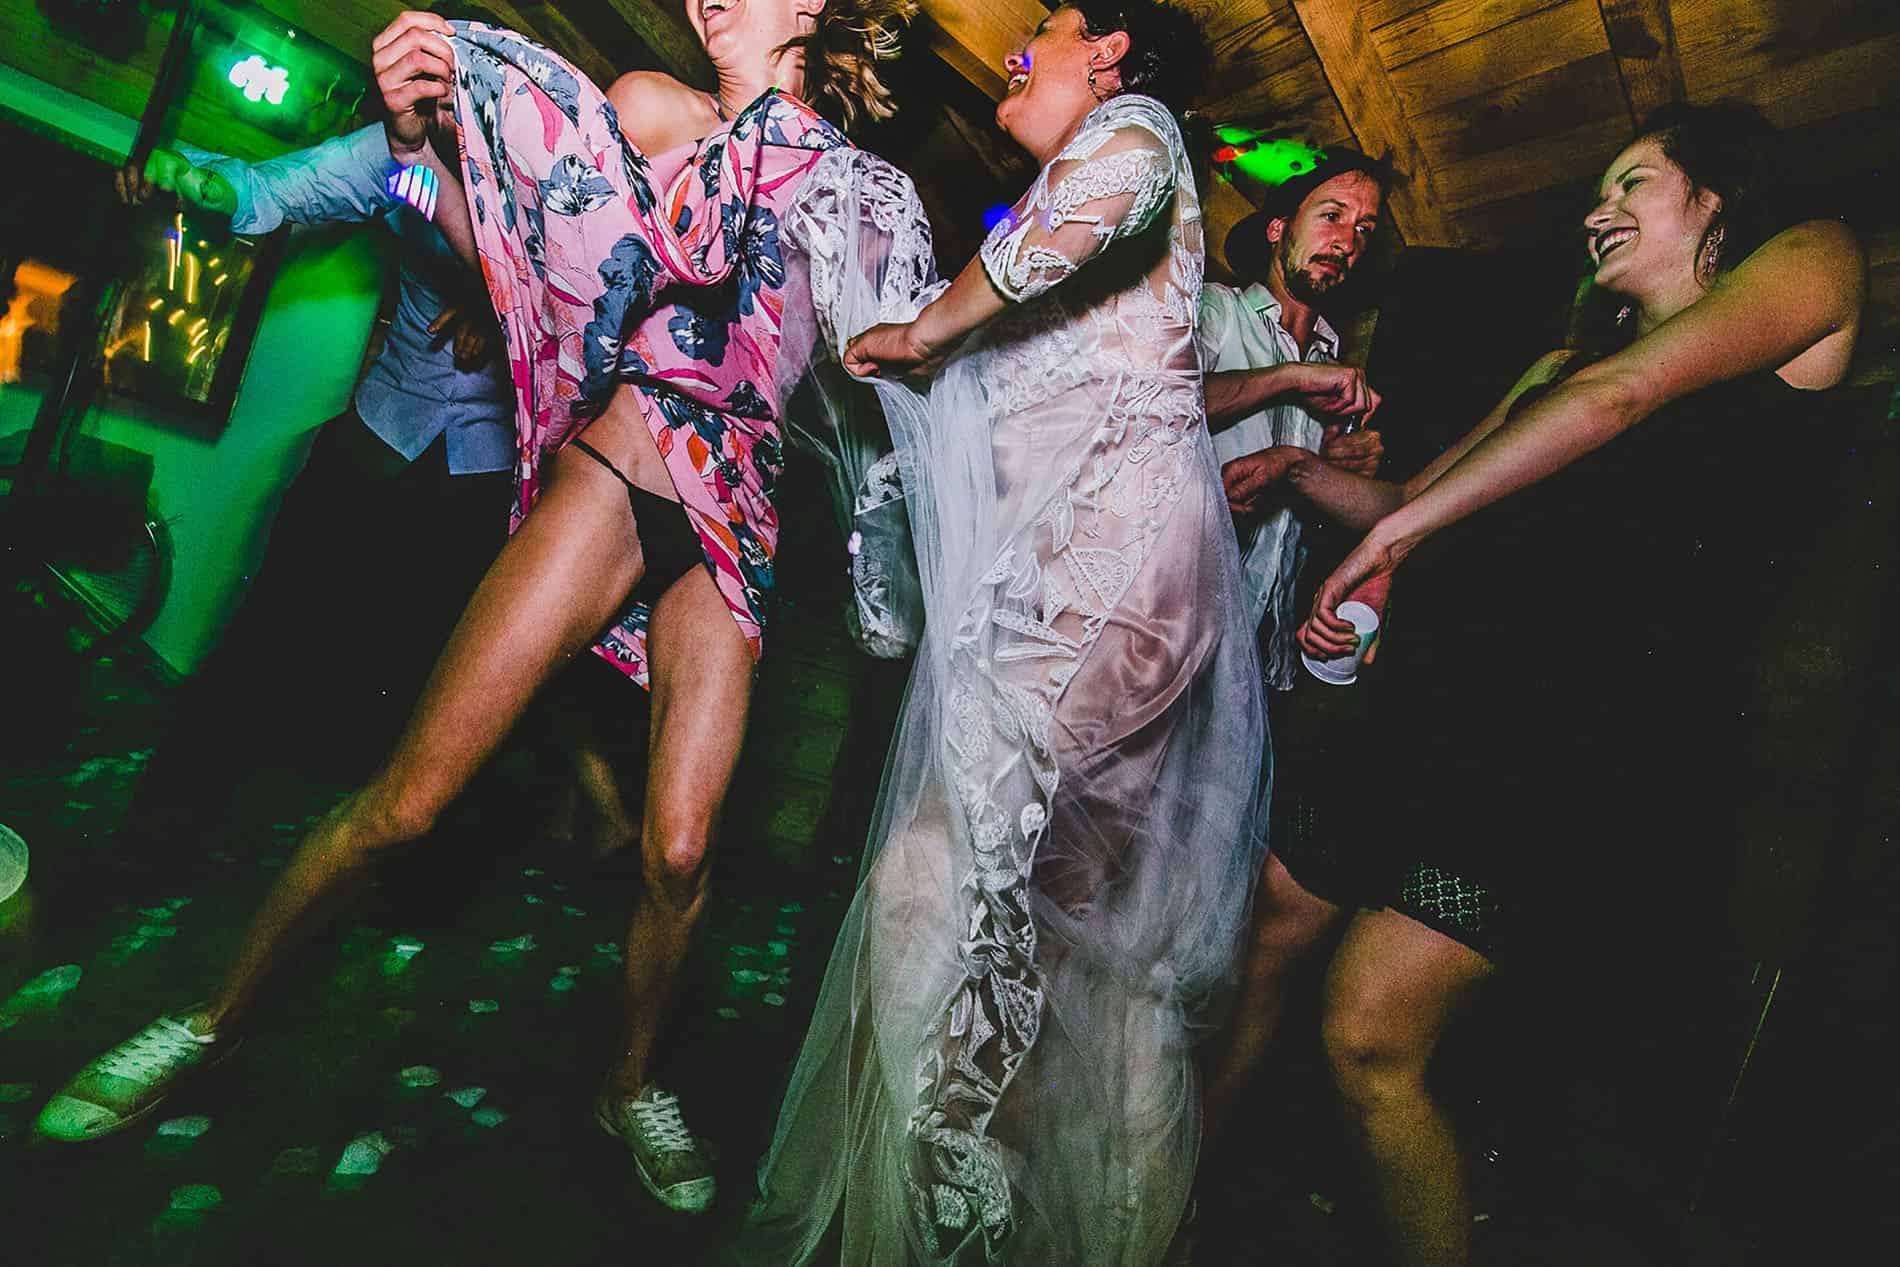 crazy people dancing wild in french wedding